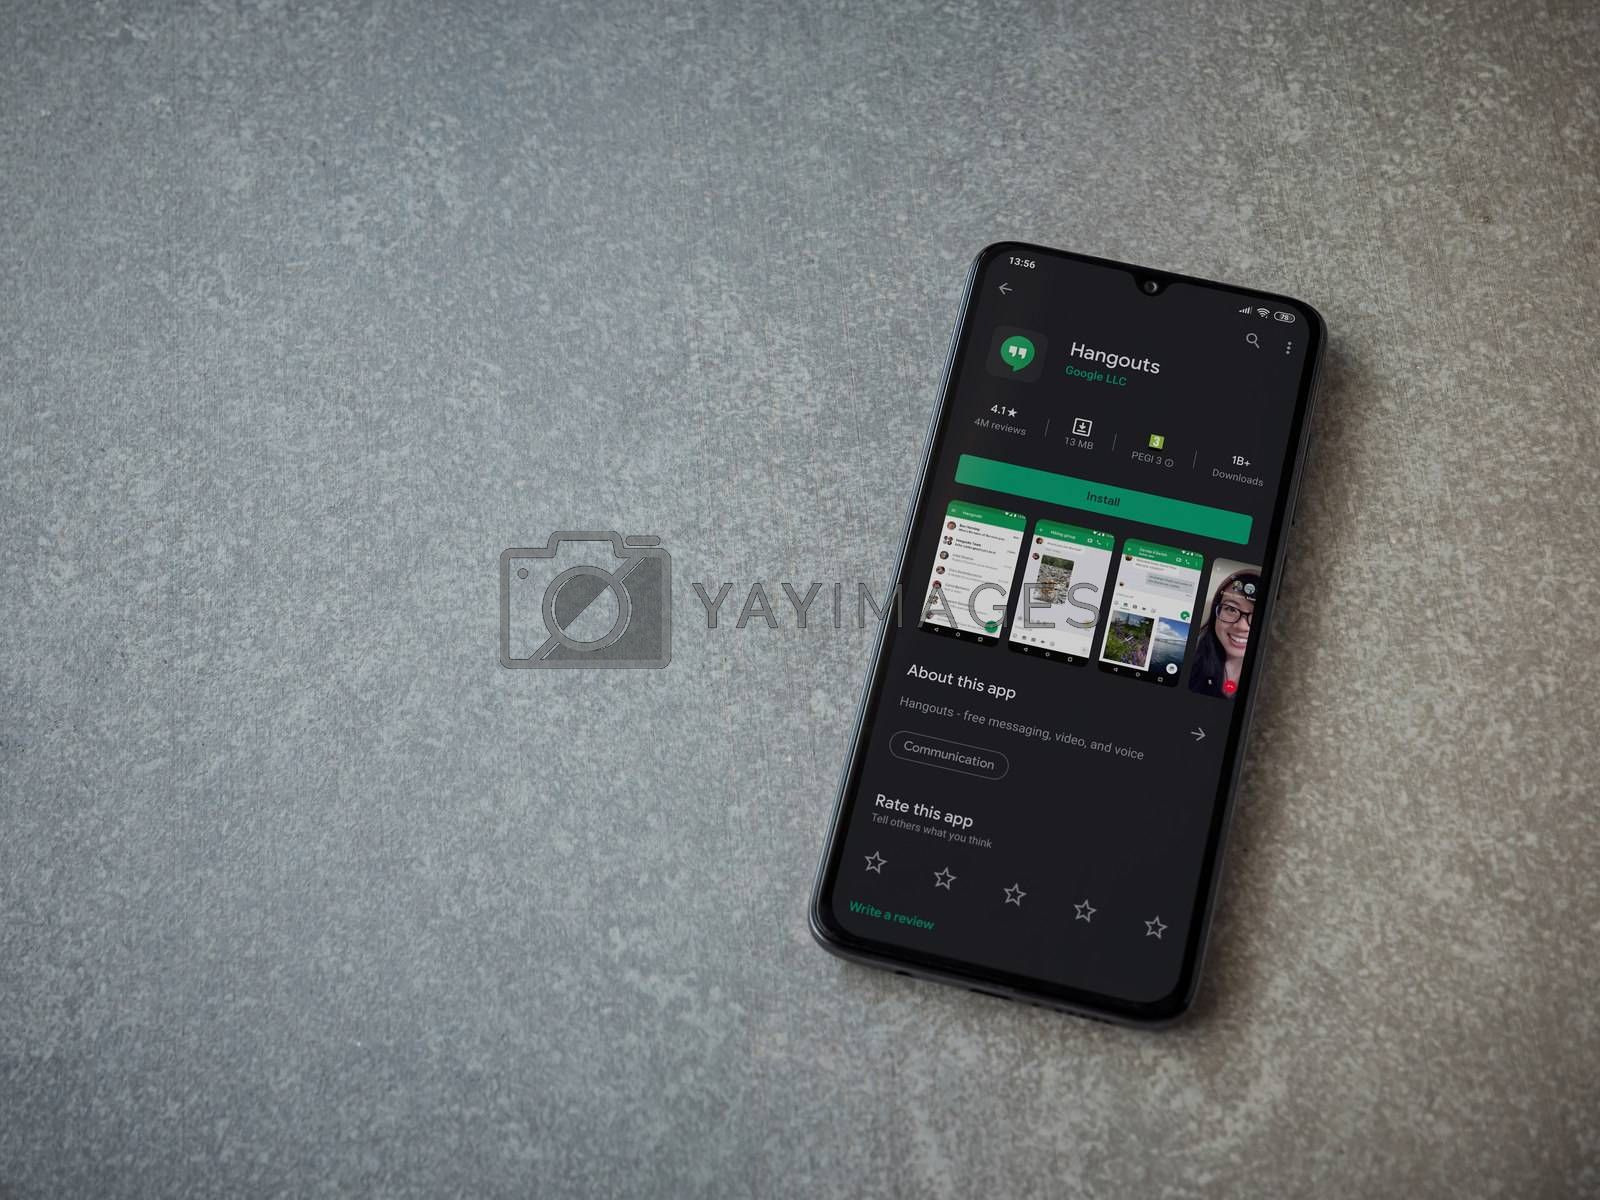 Lod, Israel - July 8, 2020: Hanghouts app play store page on the display of a black mobile smartphone on ceramic stone background. Top view flat lay with copy space.